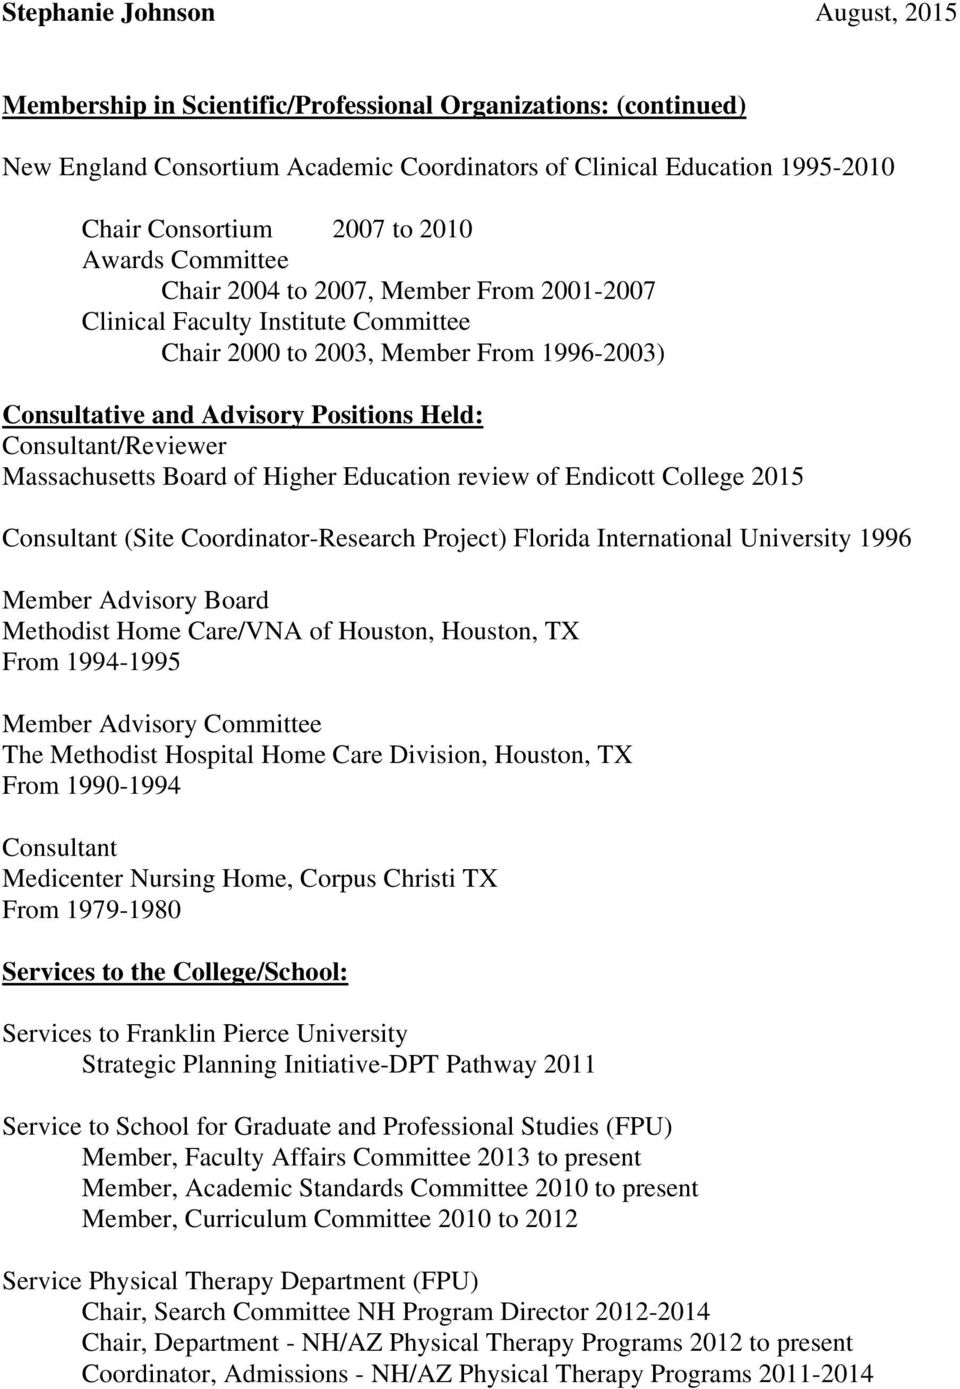 Higher Education review of Endicott College 2015 Consultant (Site Coordinator-Research Project) Florida International University 1996 Member Advisory Board Methodist Home Care/VNA of Houston,